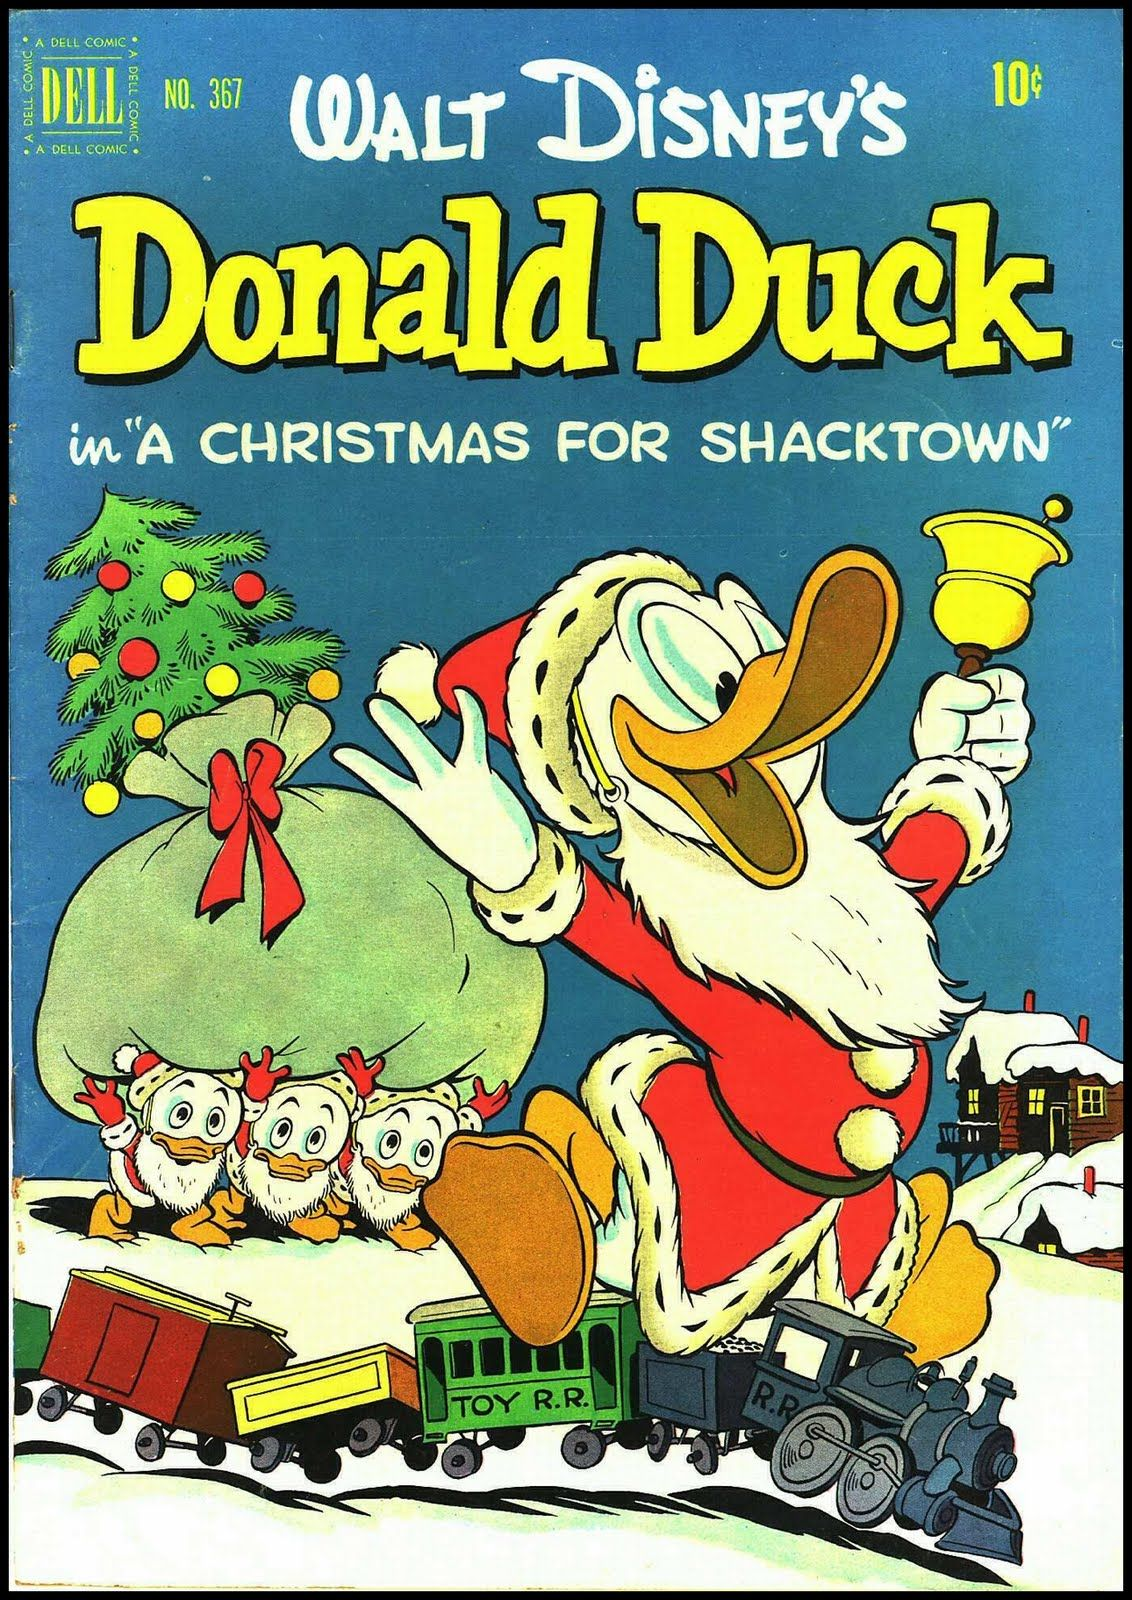 Donald Duck A Christmas for Shacktown, art and story by